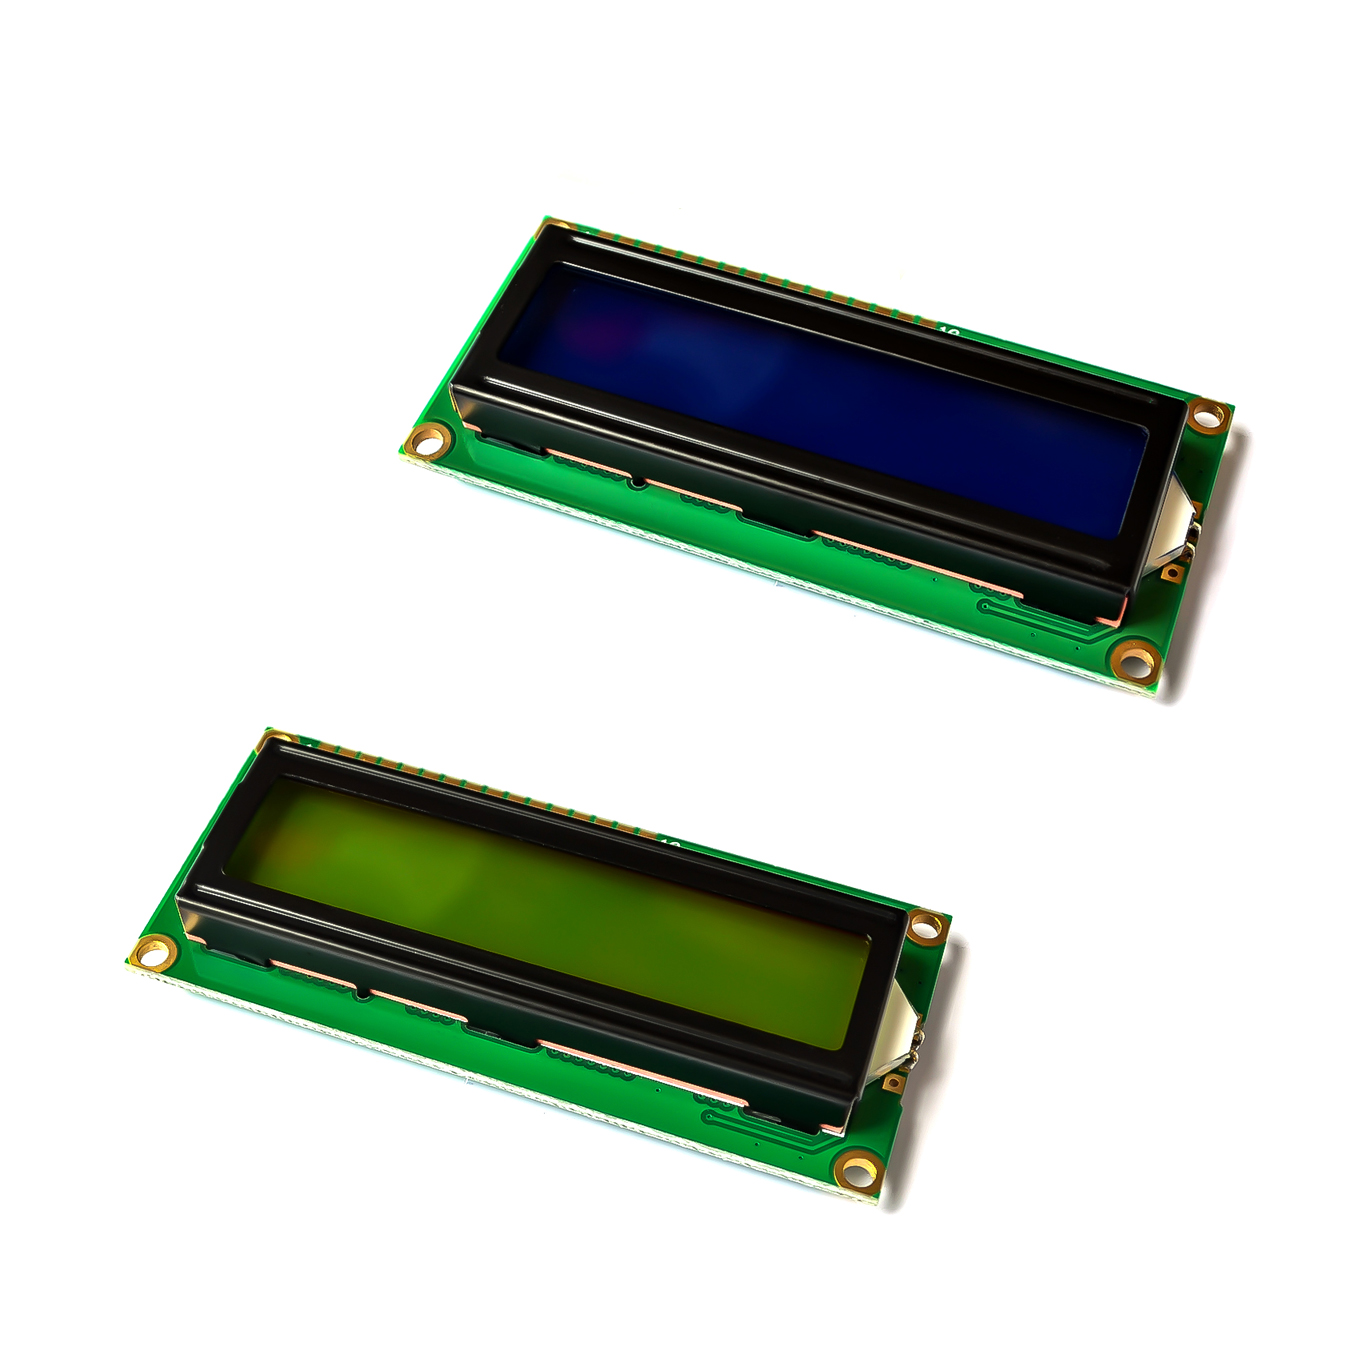 US $0 49  LCD1602 1602 module green screen 16x2 Character LCD Display  Module 1602 5V green screen and white code for arduino-in Integrated  Circuits